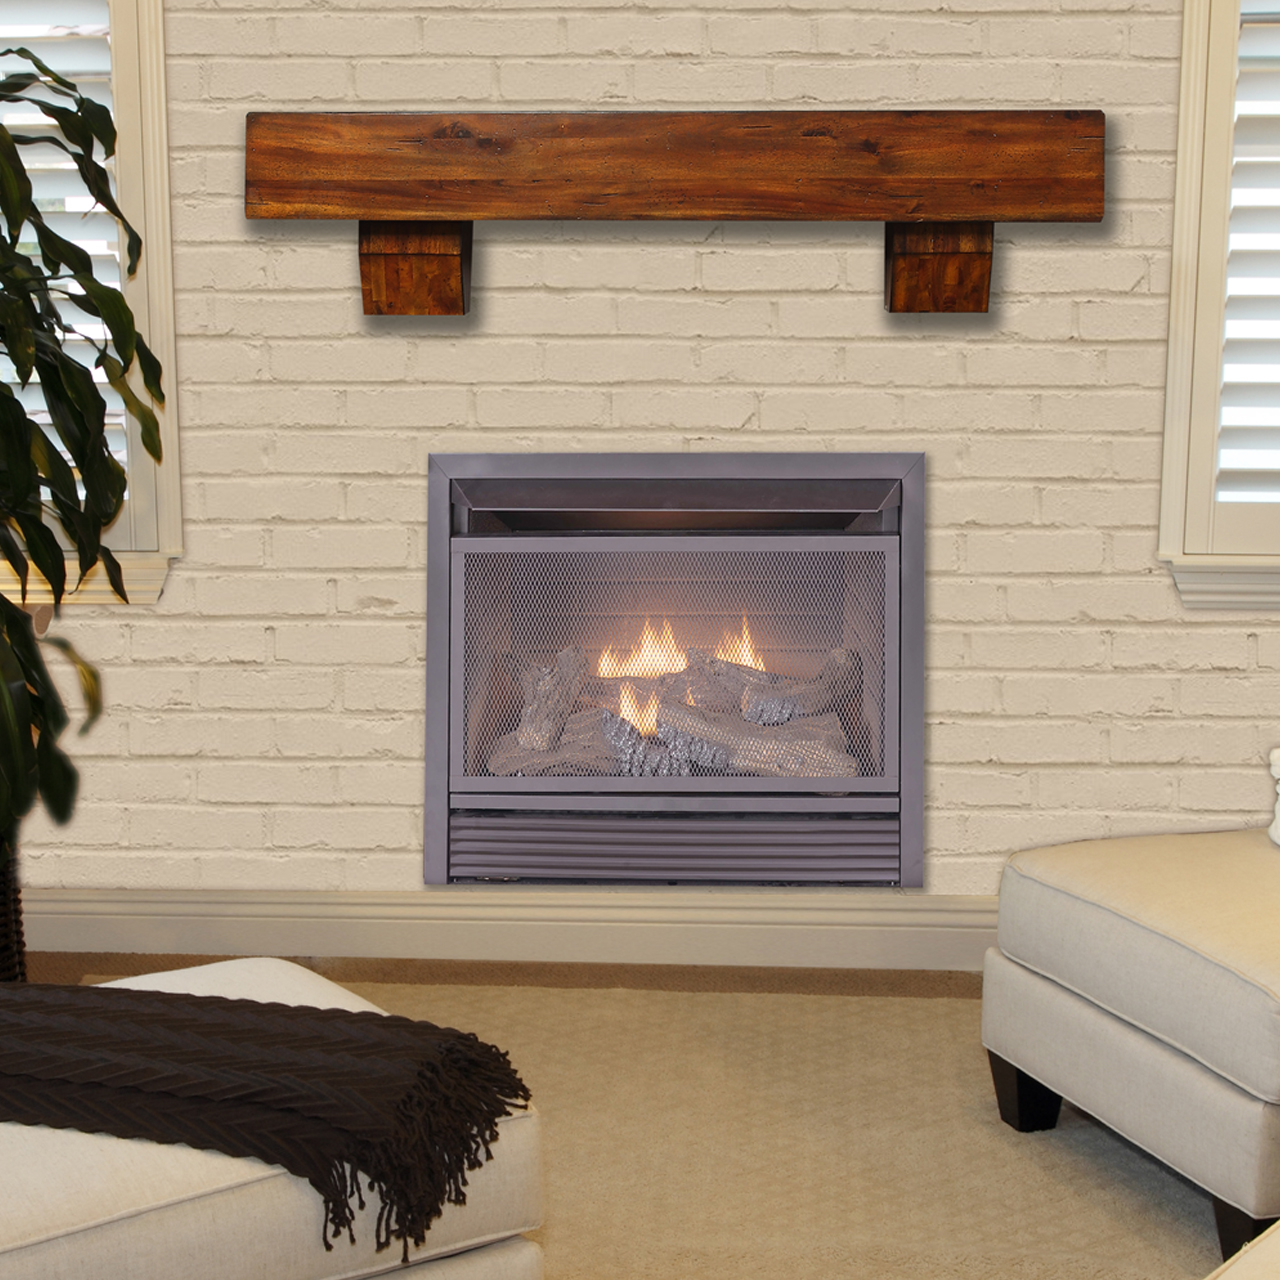 28-insert-with-brown-mantel.jpg